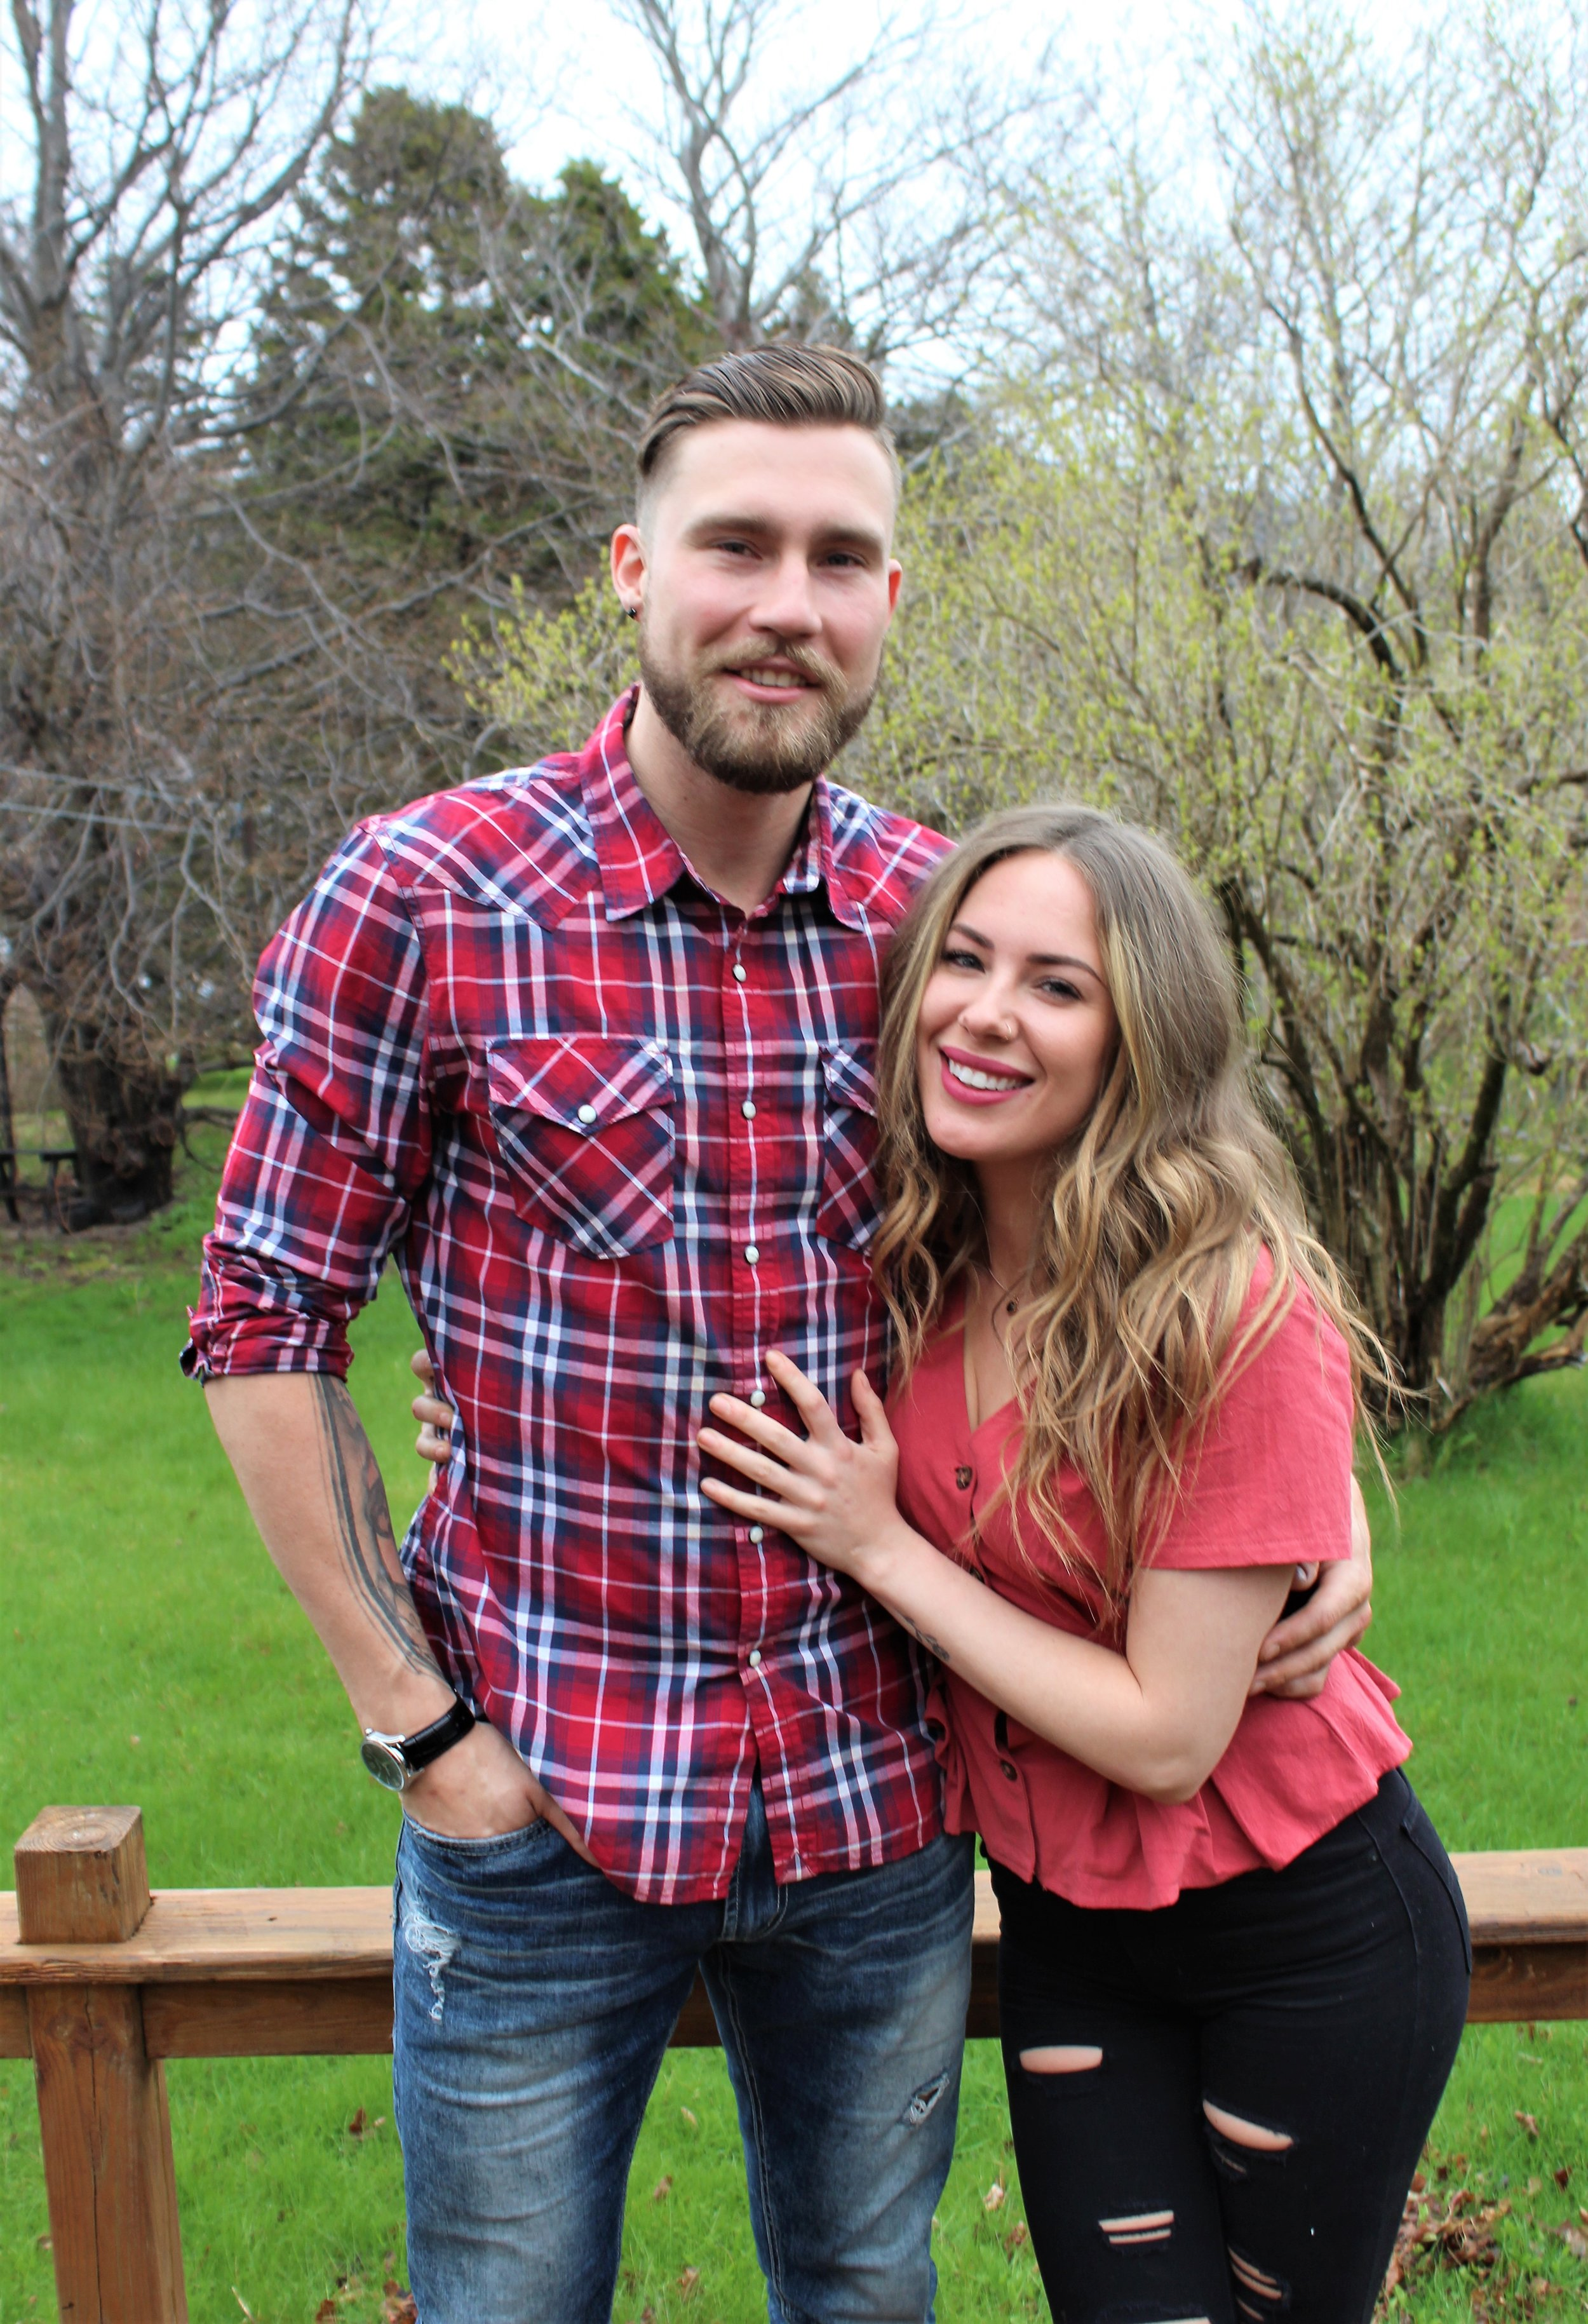 Adam Pike (left) and Samantha Picco are the two contestants from Newfoundland featured on the seventh season of Big Brother Canada. The two developed a relationship on the show, which fans have since dubbed as 'Sadam.'